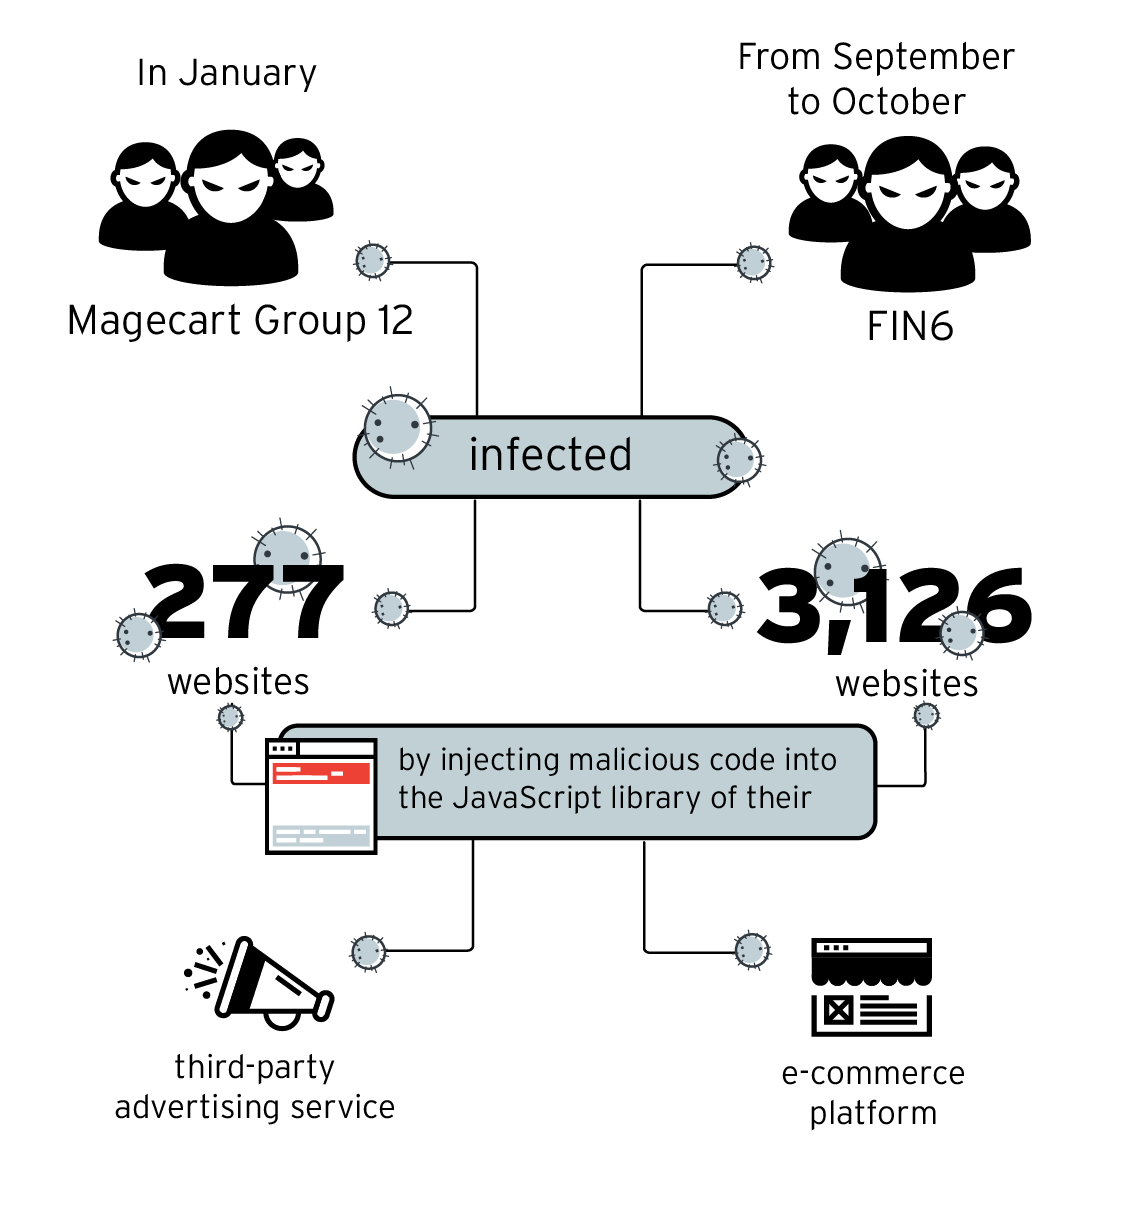 E-commerce site compromise campaigns perpetrated by Magecart Group 12 and FIN6 in 2019